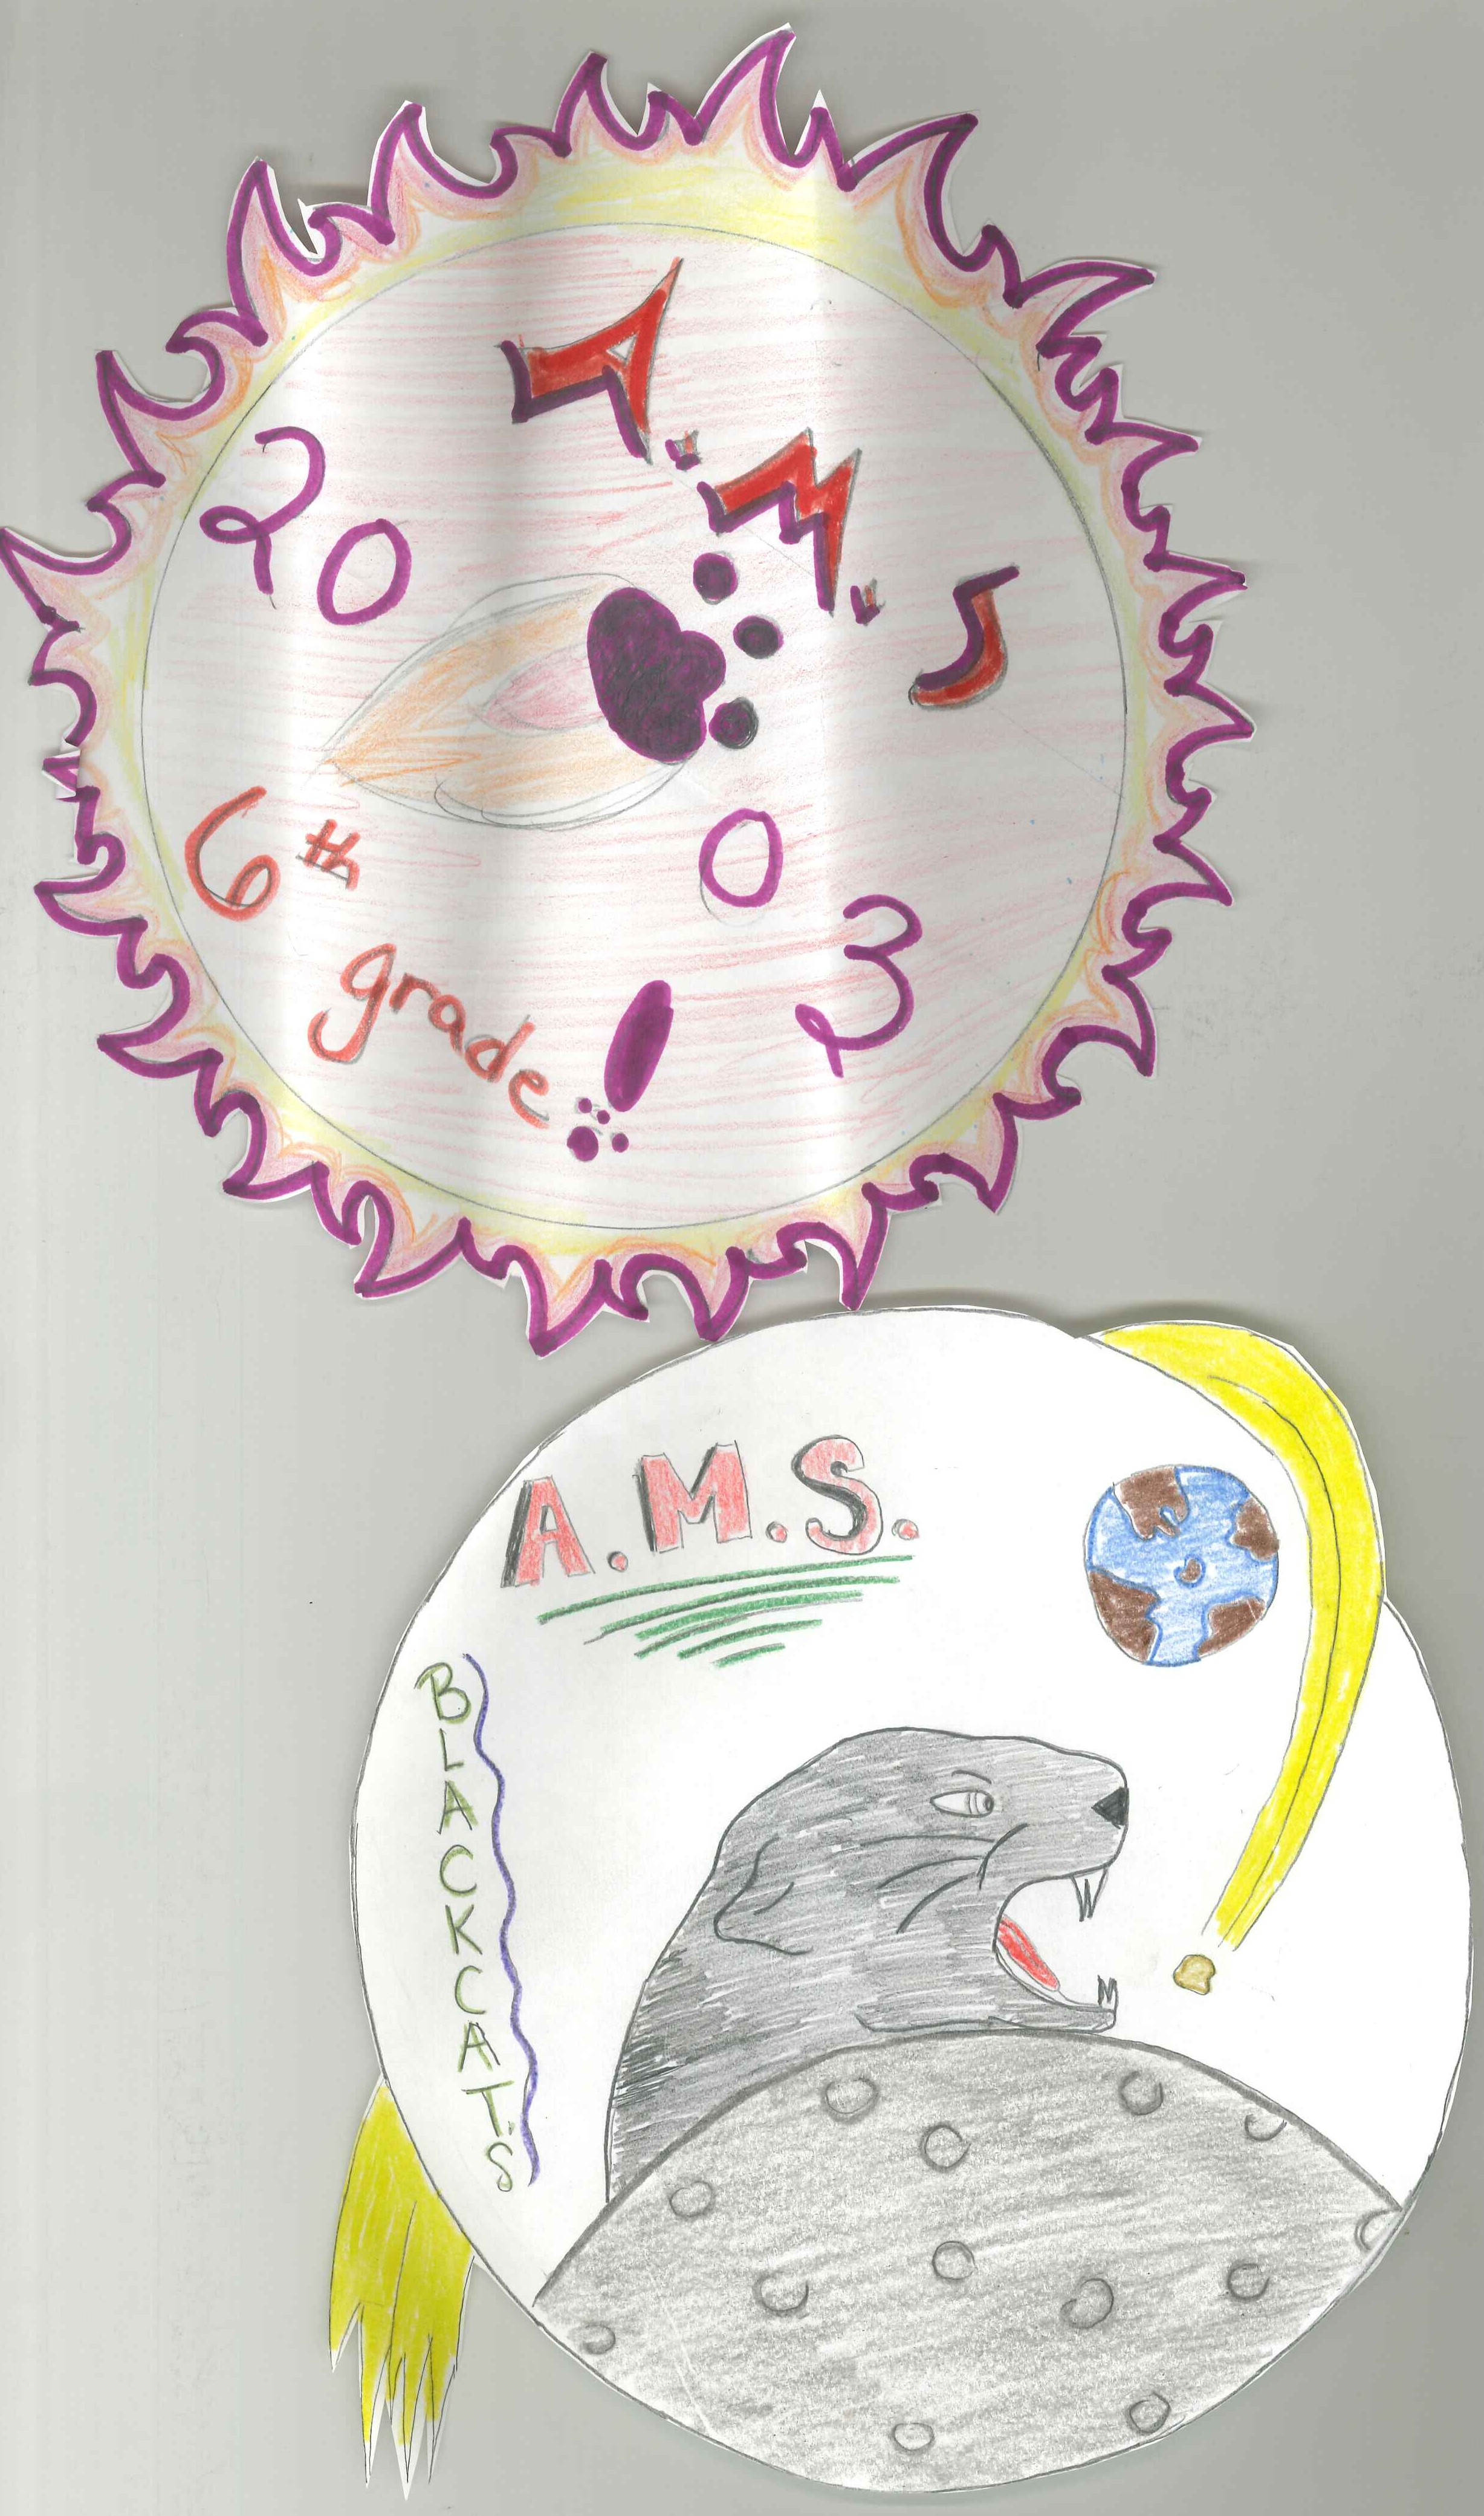 2003 AMS 6th grade patch designs.jpg